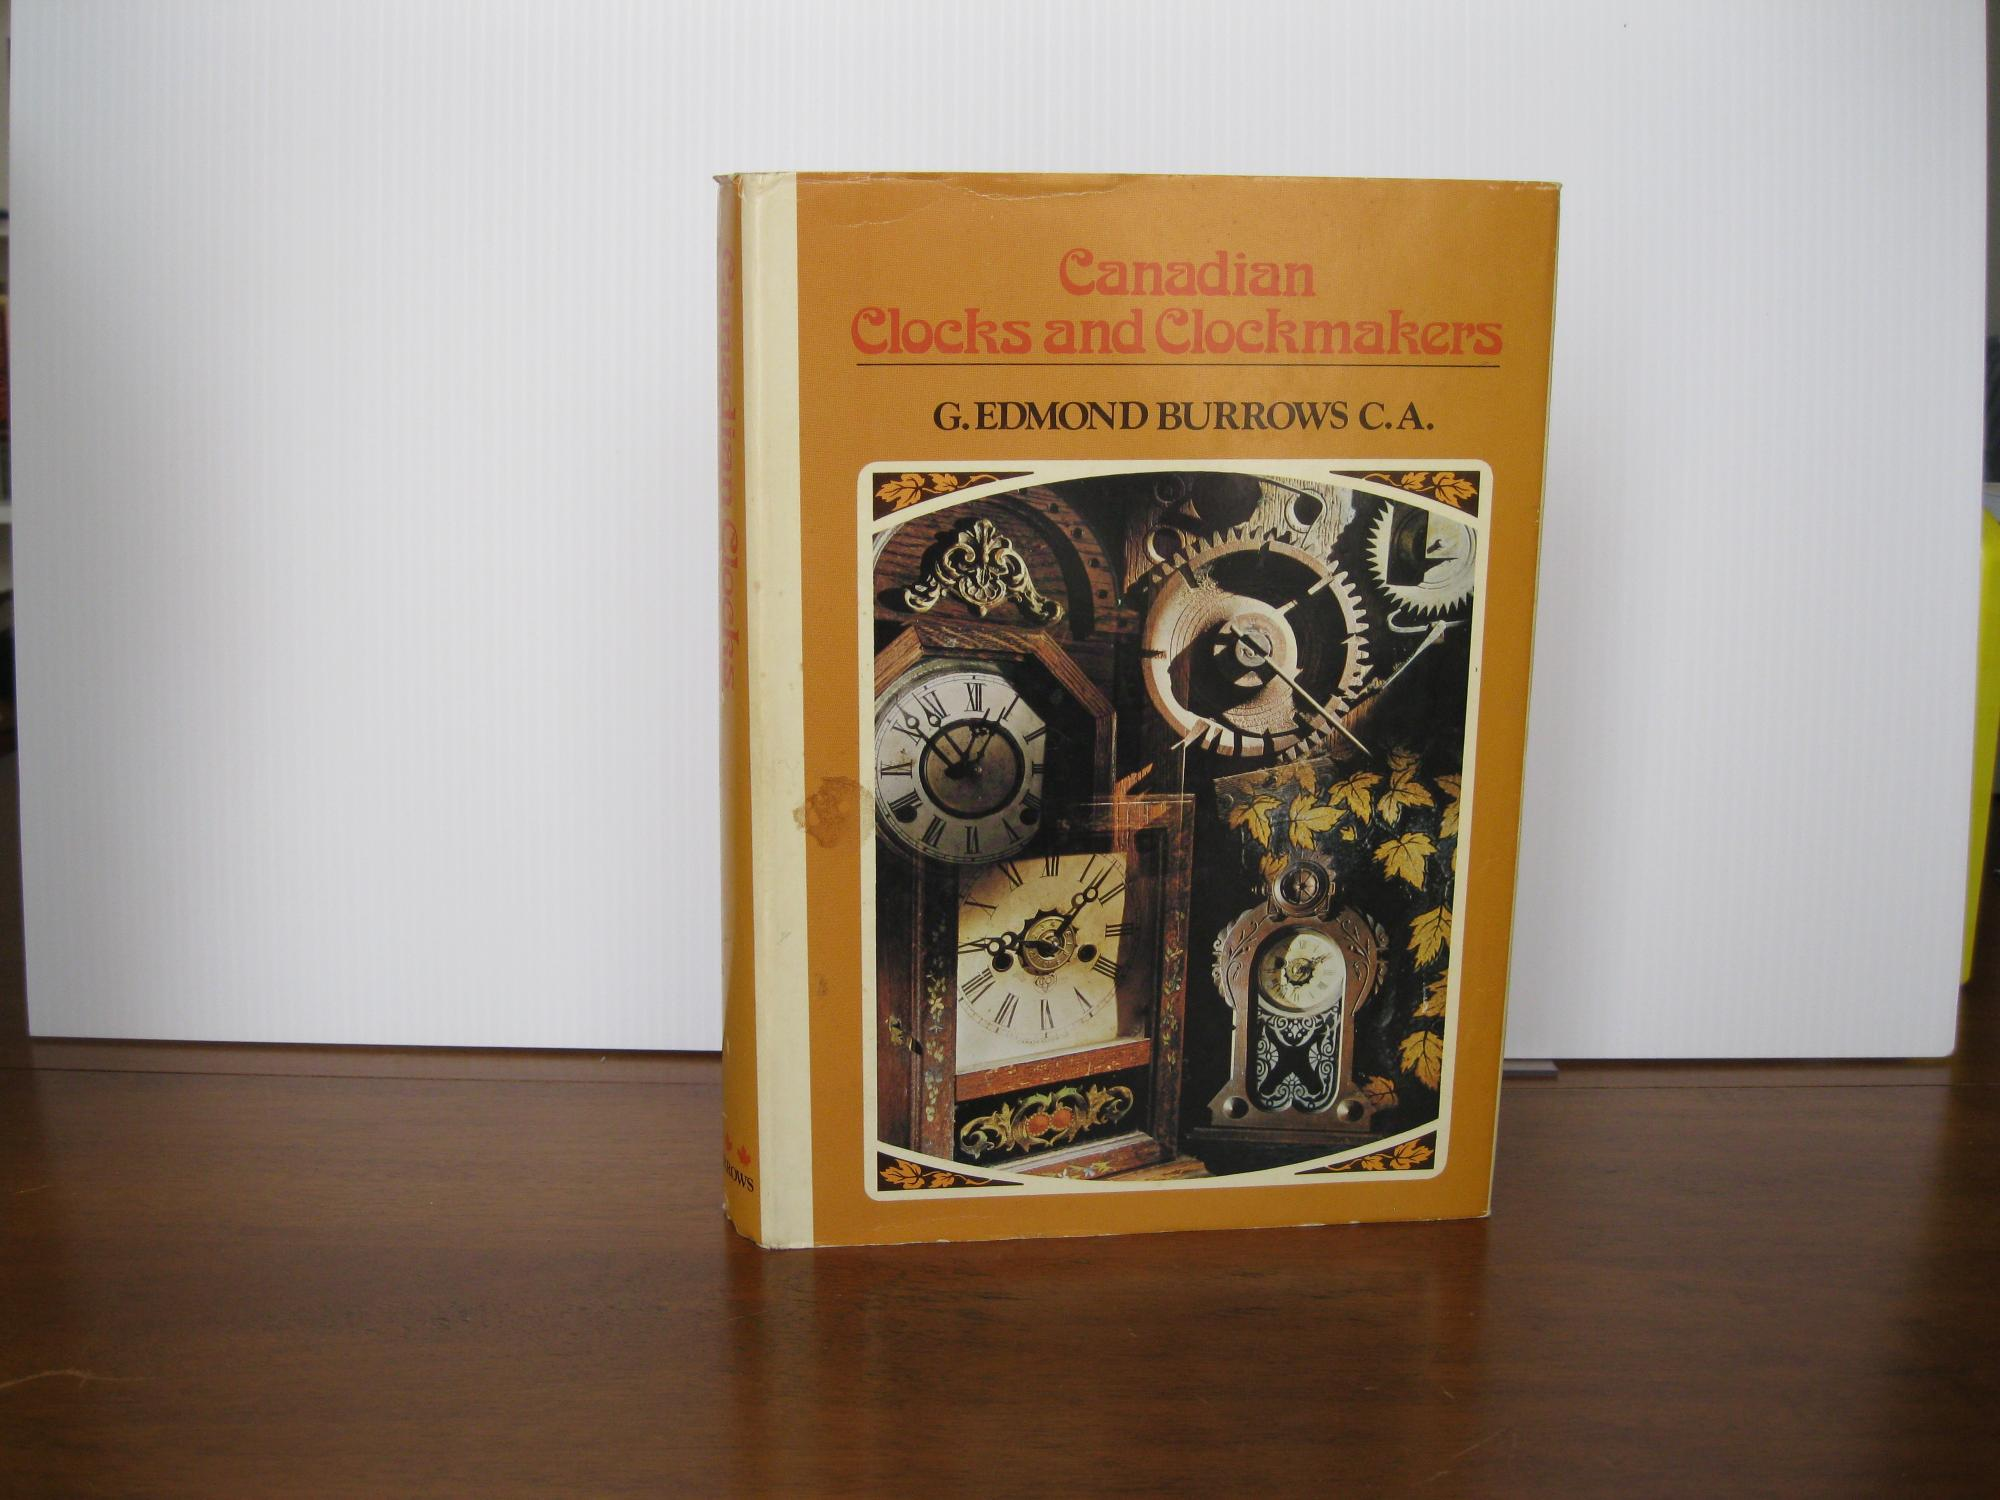 CANADIAN_CLOCKS_AND_CLOCKMAKERS_*SIGNED*_BURROWS,_G._EDMUND_[Very_Good]_[Hardcover]